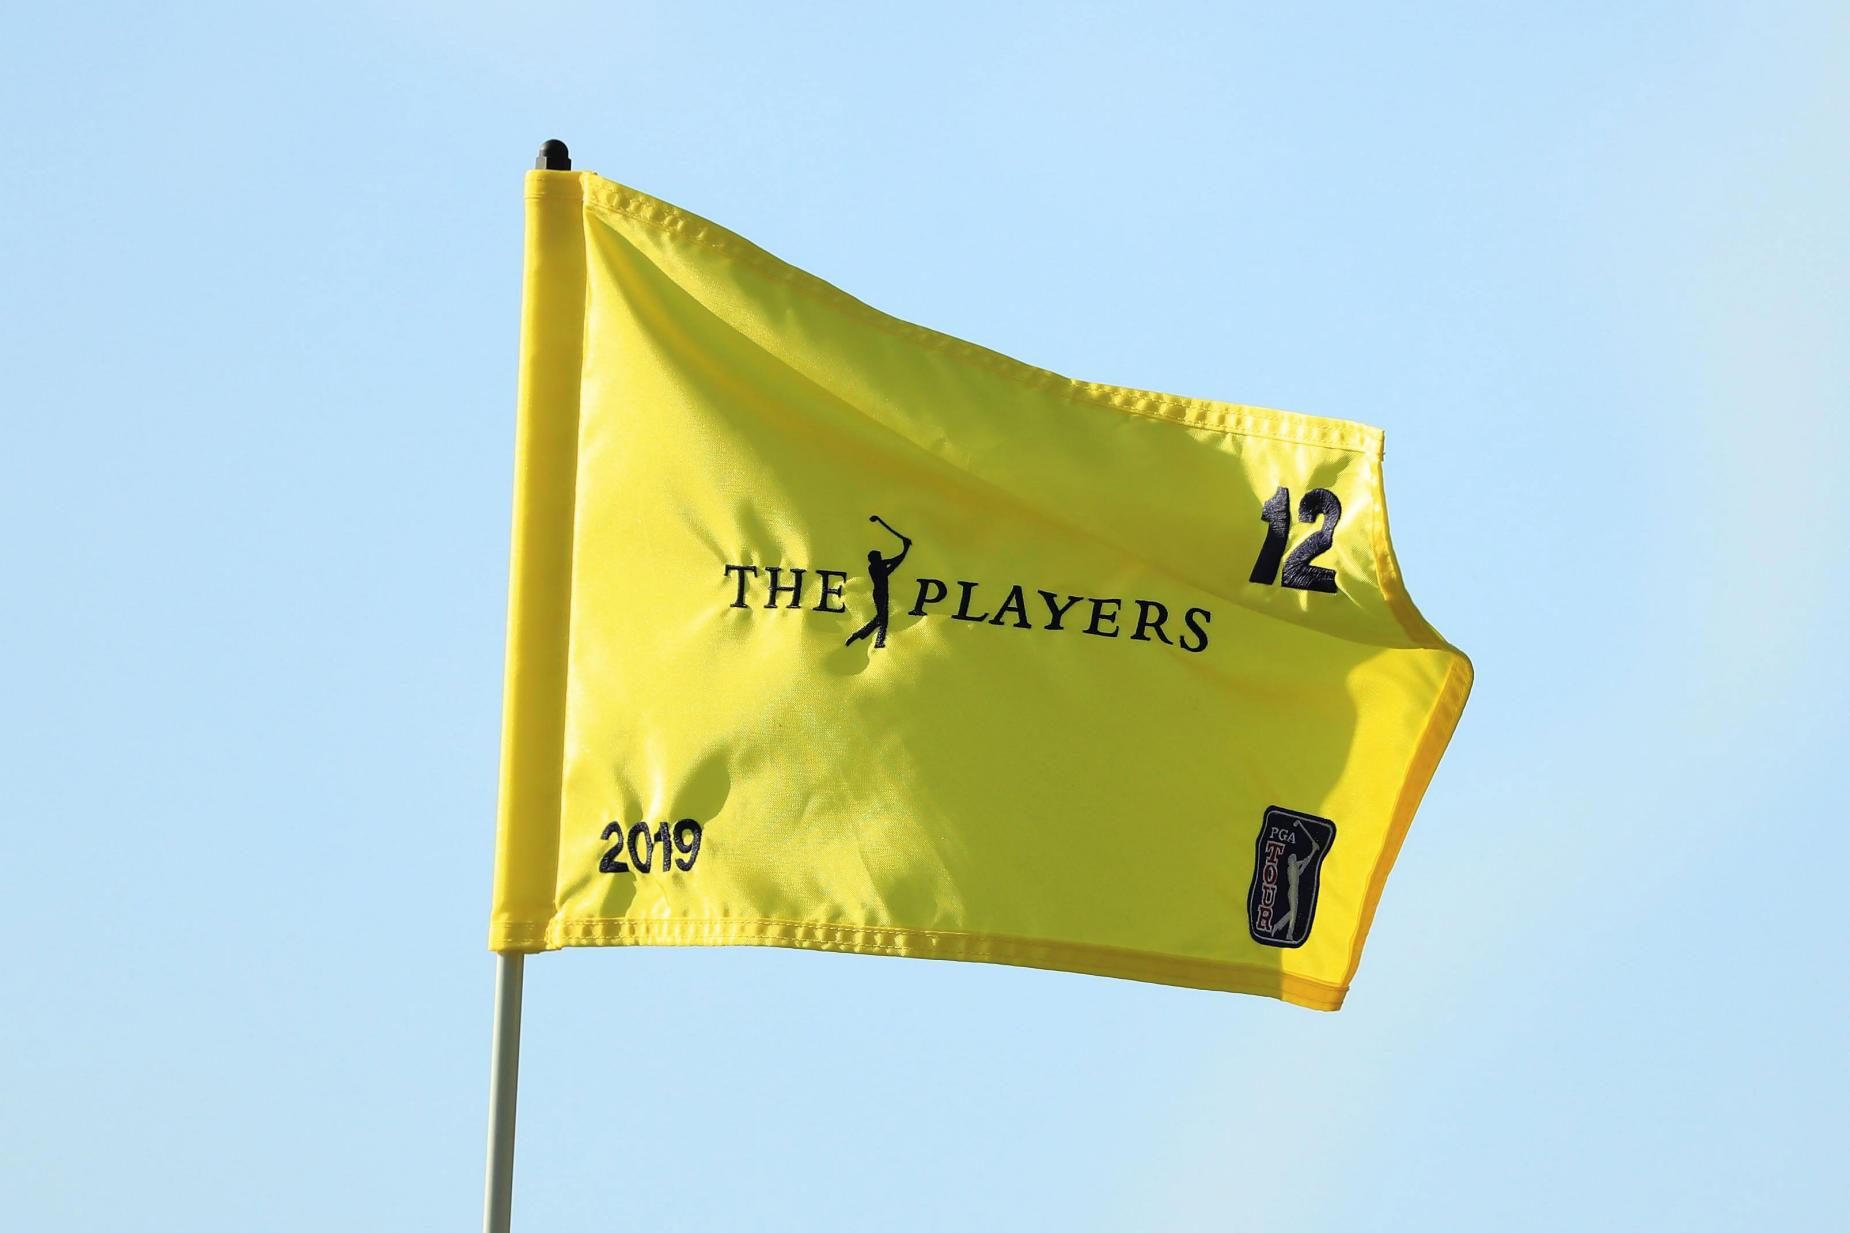 players-championship-2019-flag.jpg